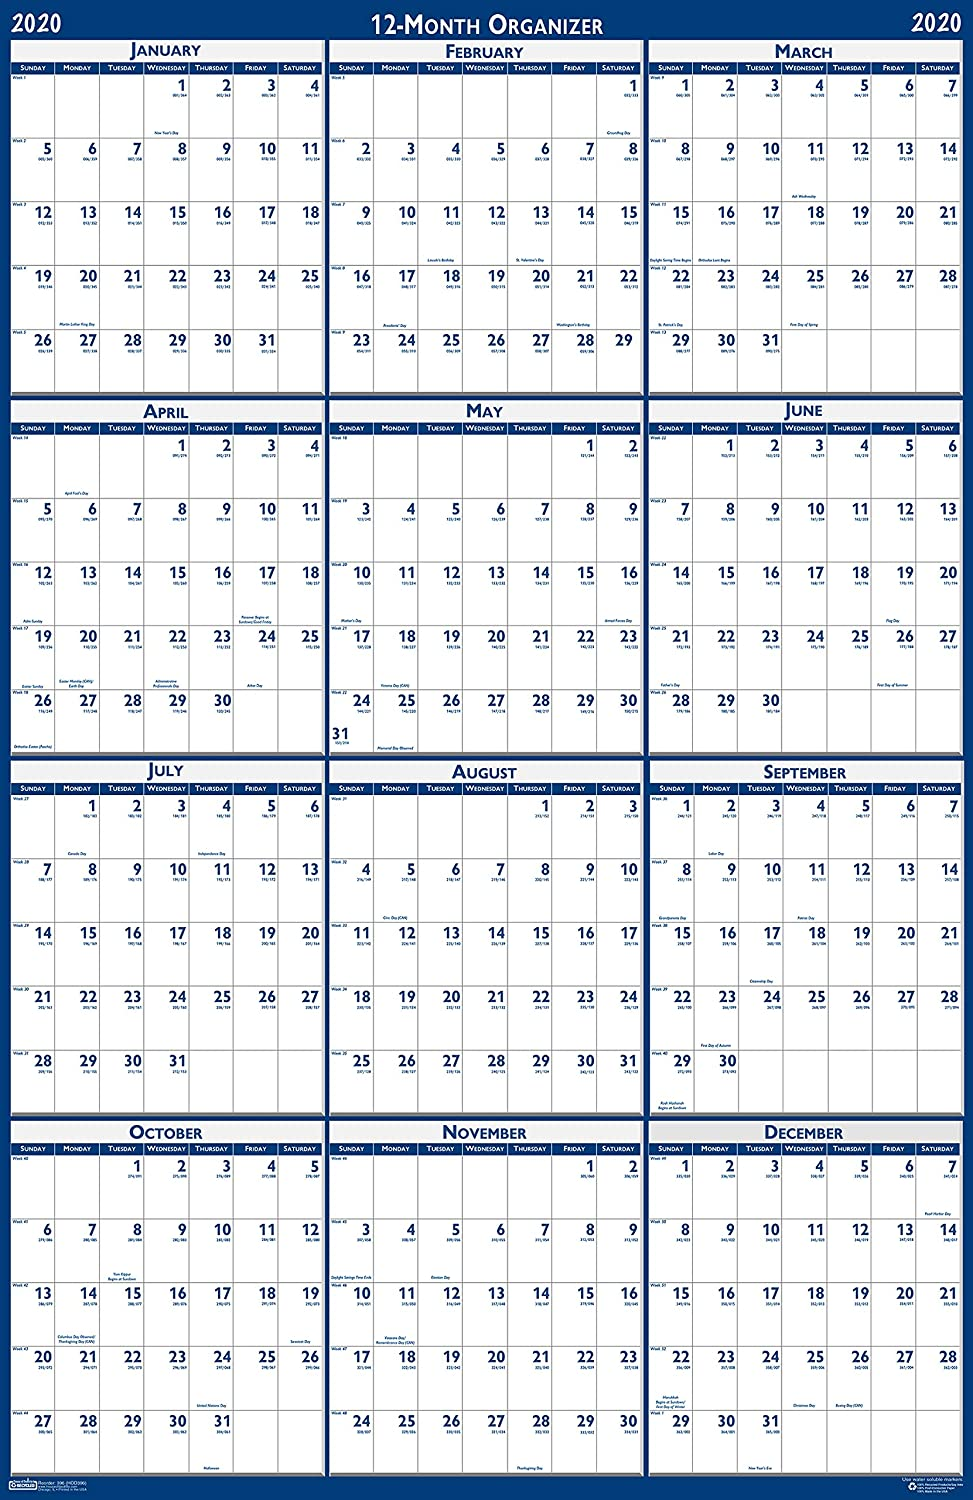 House of Doolittle 2020 Laminated Wall Calendar, Reversible, Horizontal/Vertical, 66 x 33 Inches, January - December (HOD3962-20)